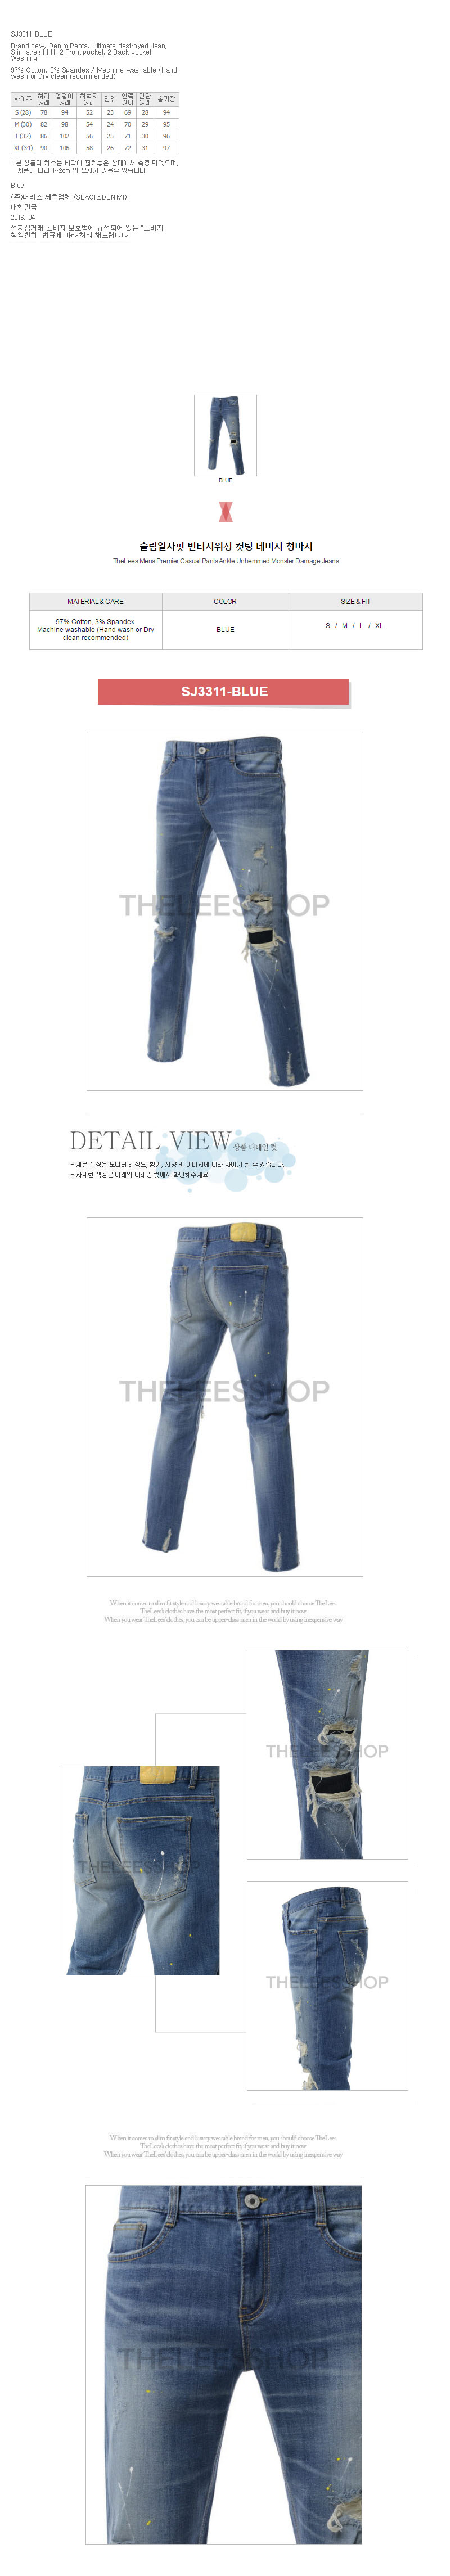 [ KOOLLOOK ] [KoolLook] Slim Fit Vintage Washed Straight Jeans SJ3311